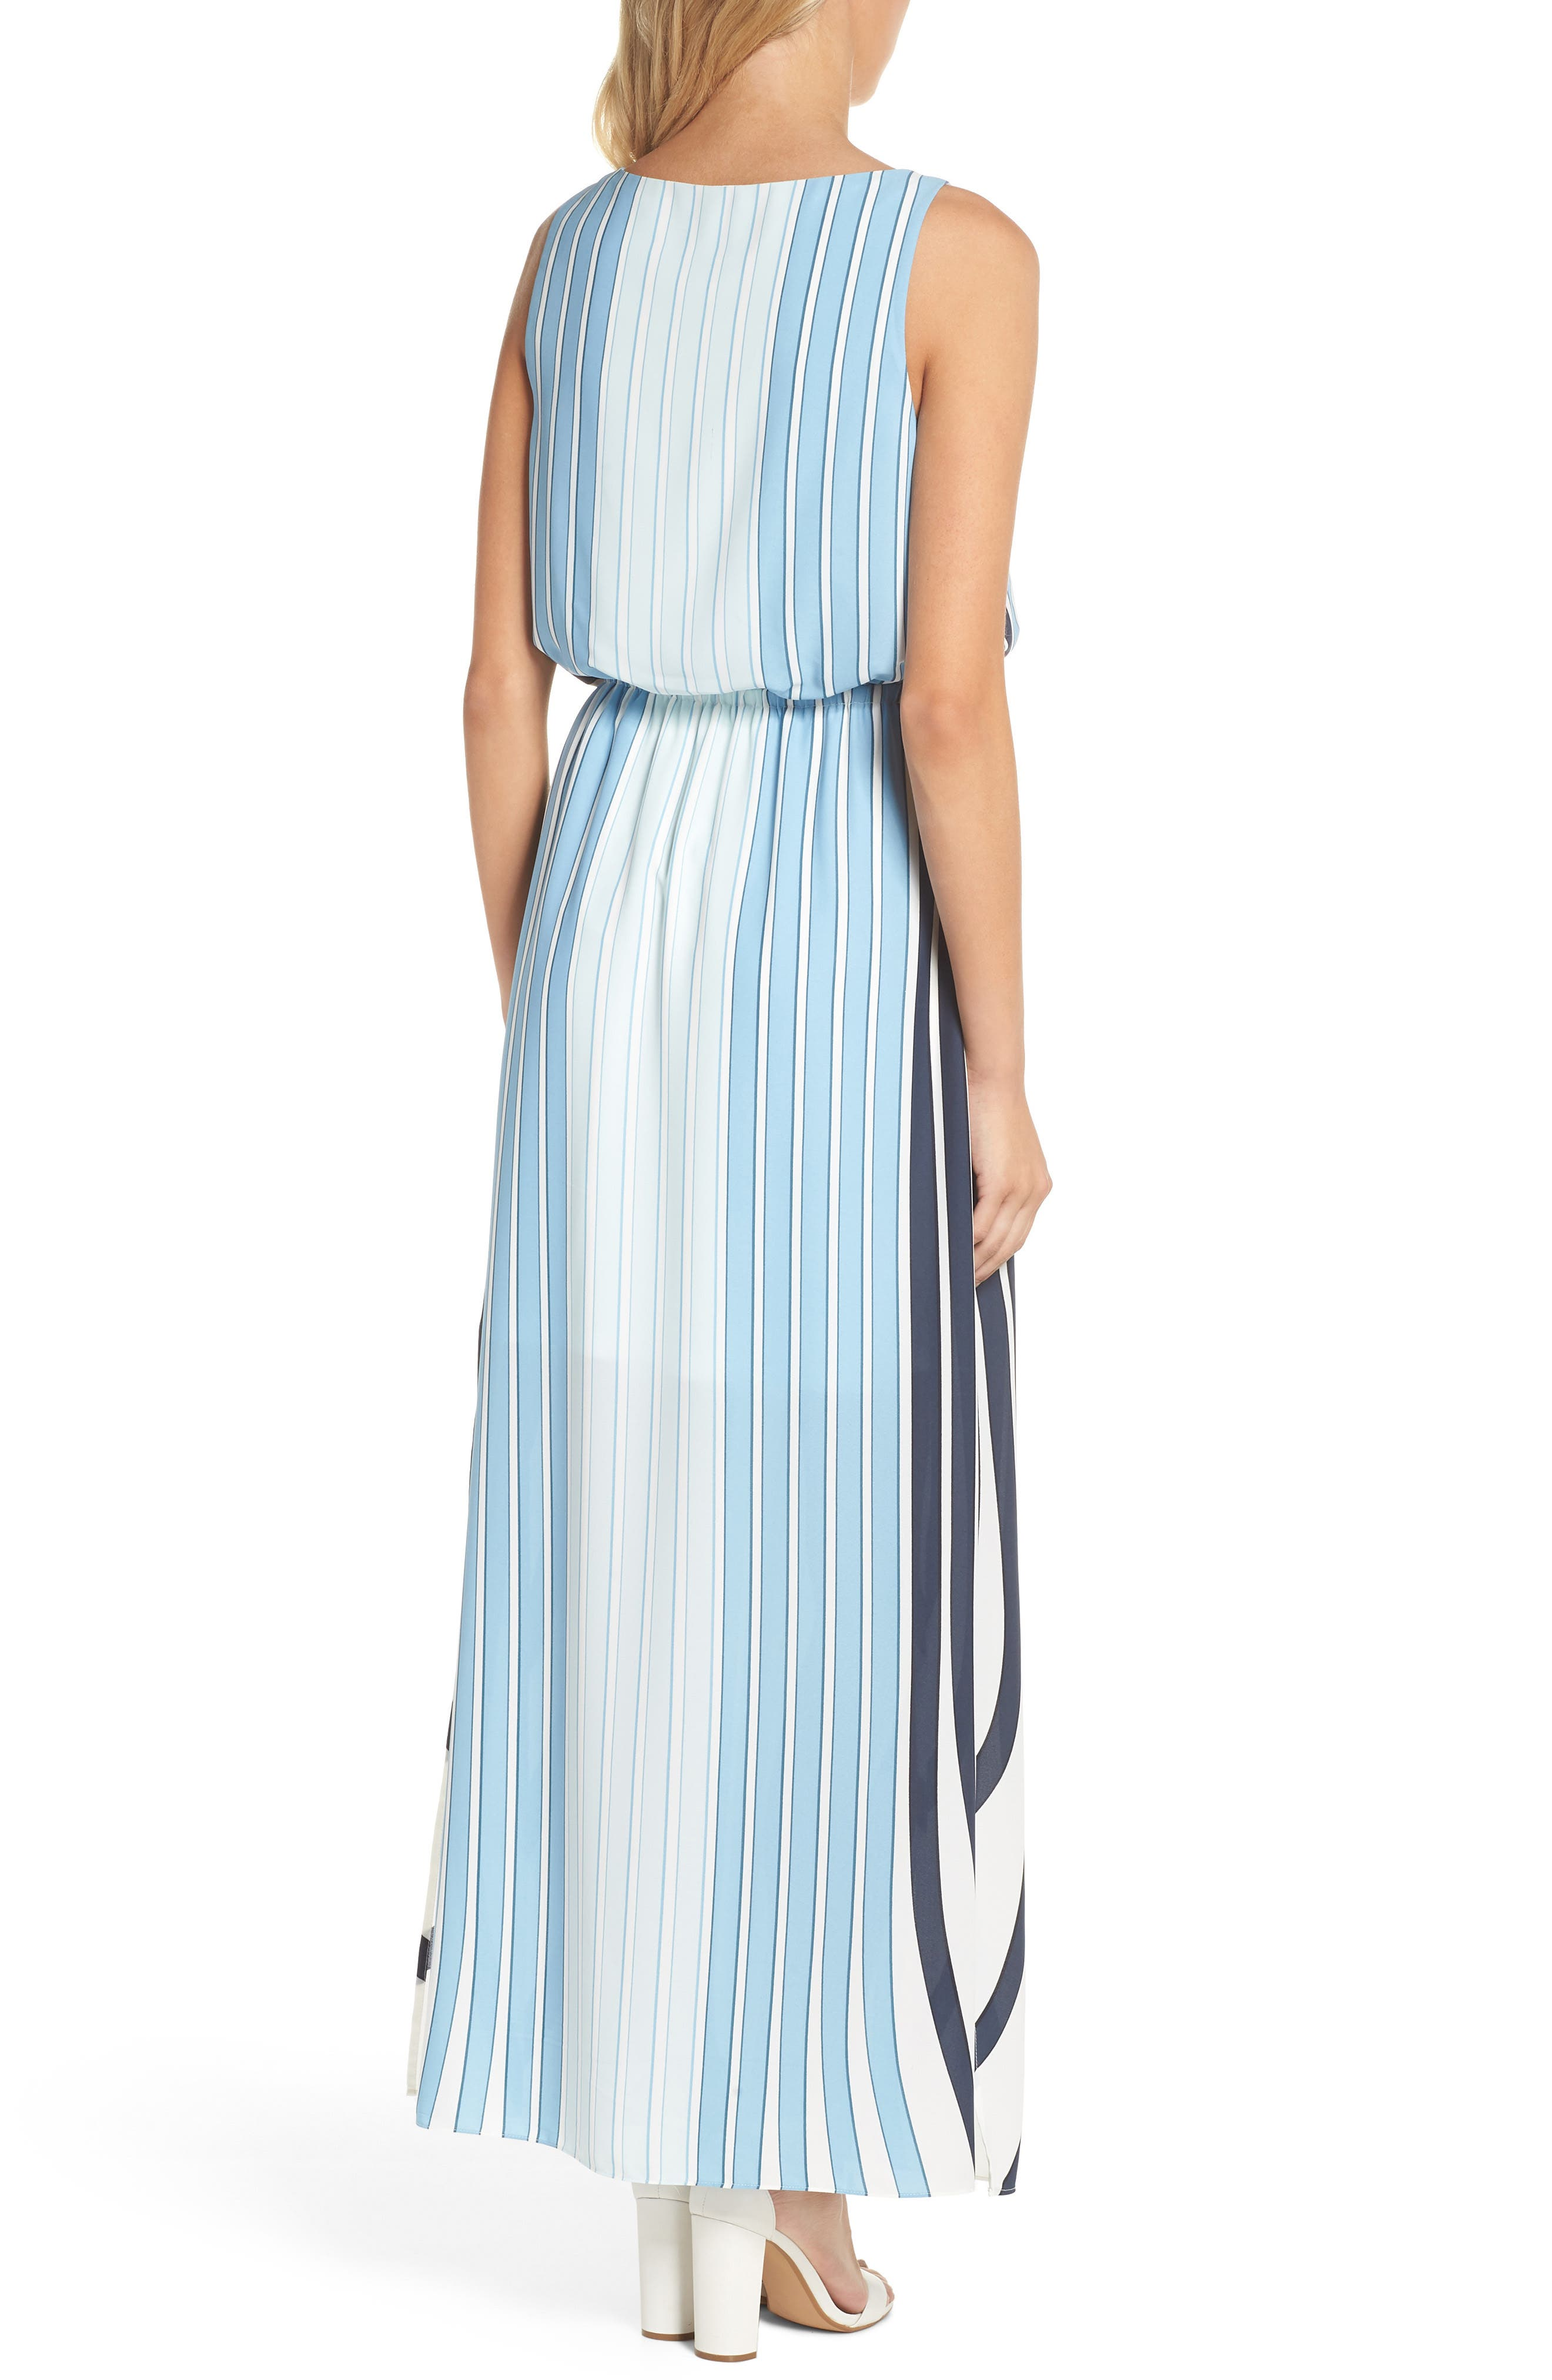 Stripe Maxi Dress,                             Alternate thumbnail 2, color,                             487